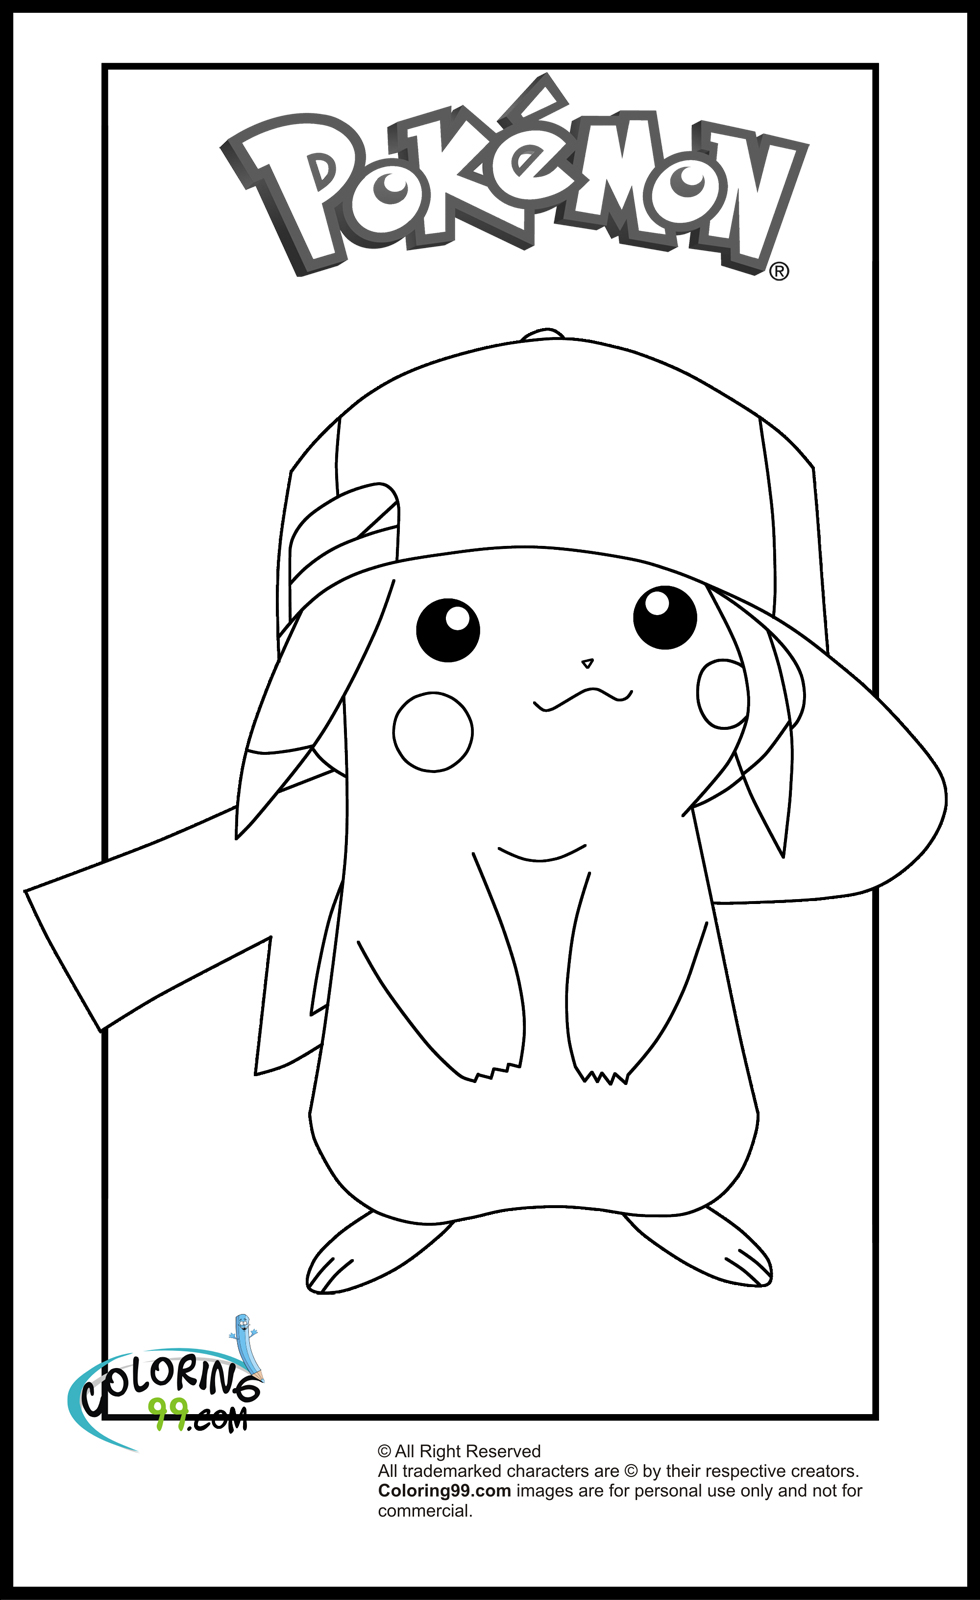 cute adorable pikachu coloring pages free printable pikachu coloring pages coloring junction pages pikachu cute adorable coloring